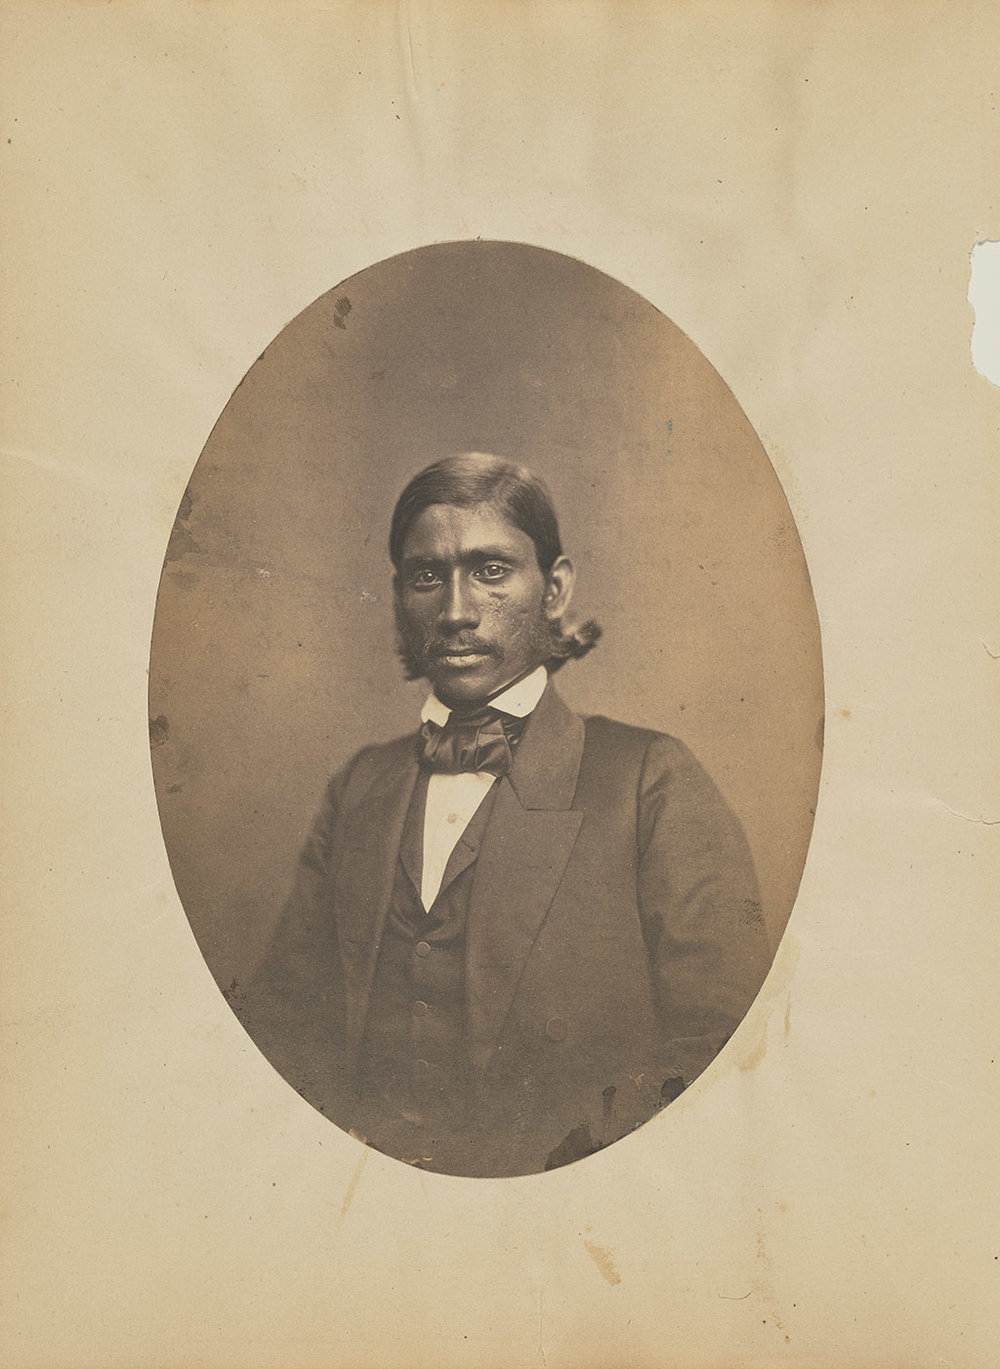 Portrait of a Gentleman in Baltimore, about 1859, Bendann Brothers, salted paper print. The J. Paul Getty Museum, Purchased in part with funds provided by Catherine Glynn Benkaim and Barbara Timmer